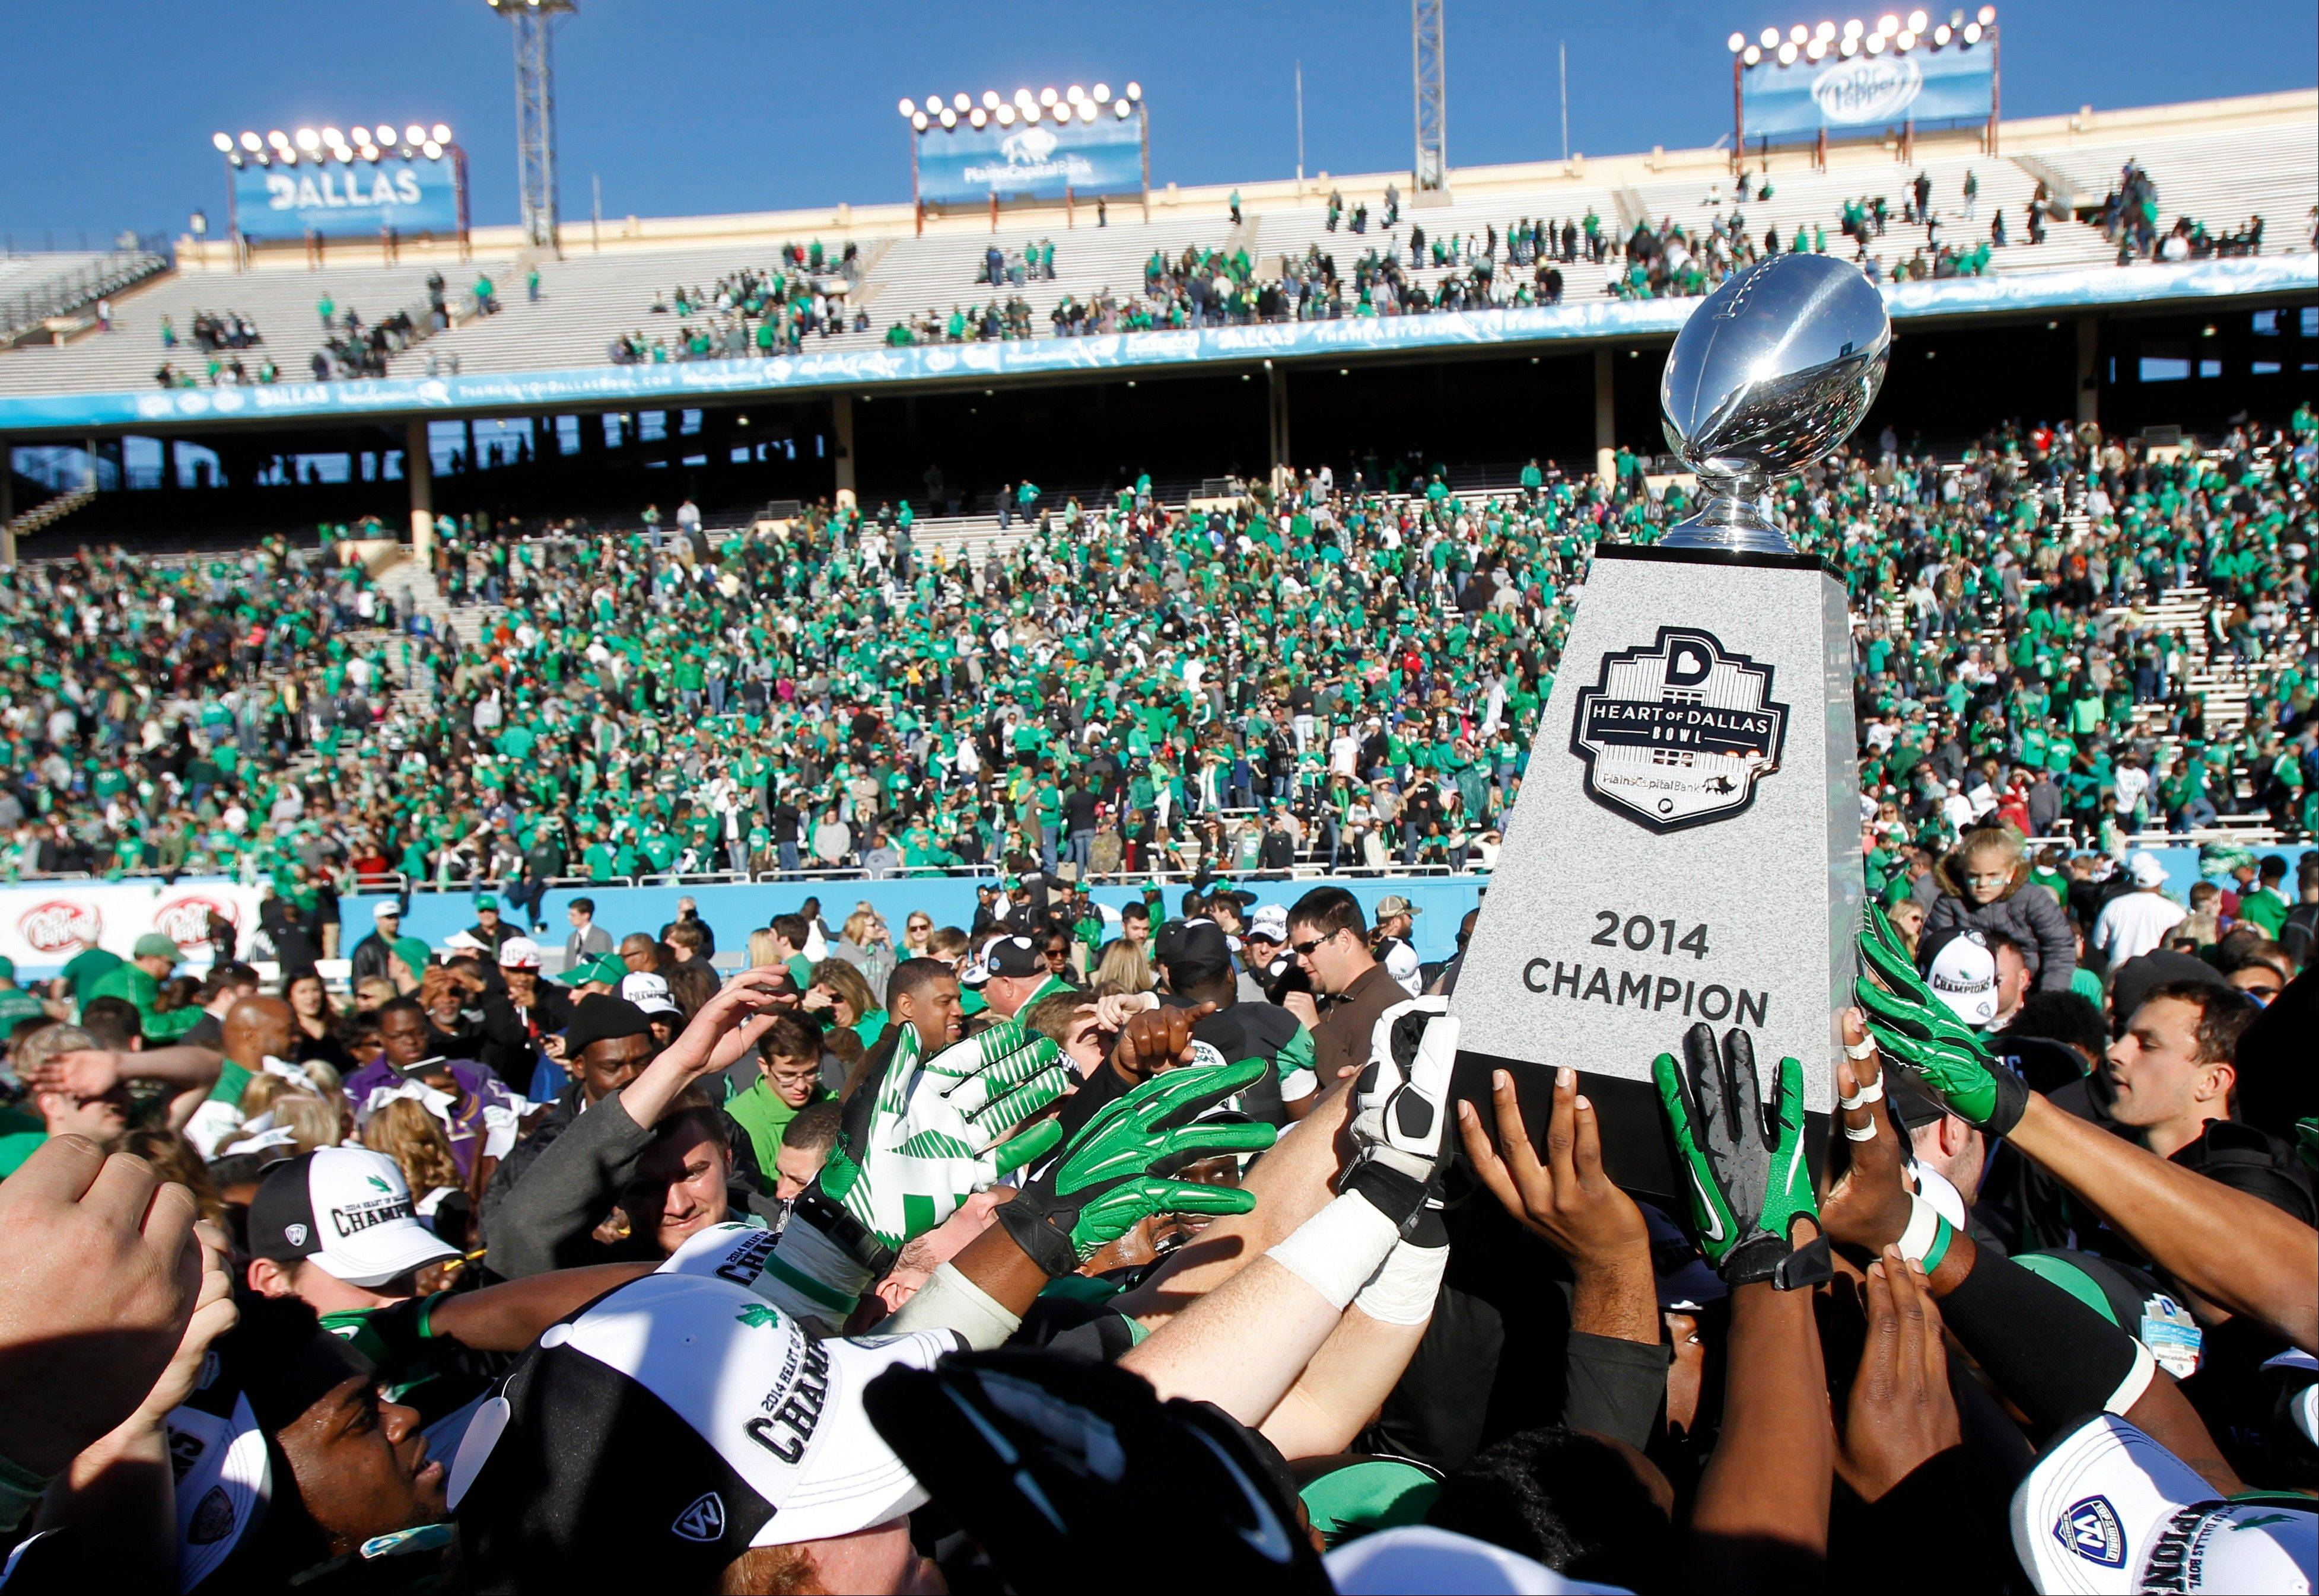 North Texas players hold aloft the Heart of Dallas Bowl trophy following their 36-14 win over UNLV in the Heart of Dallas NCAA college football game, Wednesday, Jan. 1, 2014, in Dallas.